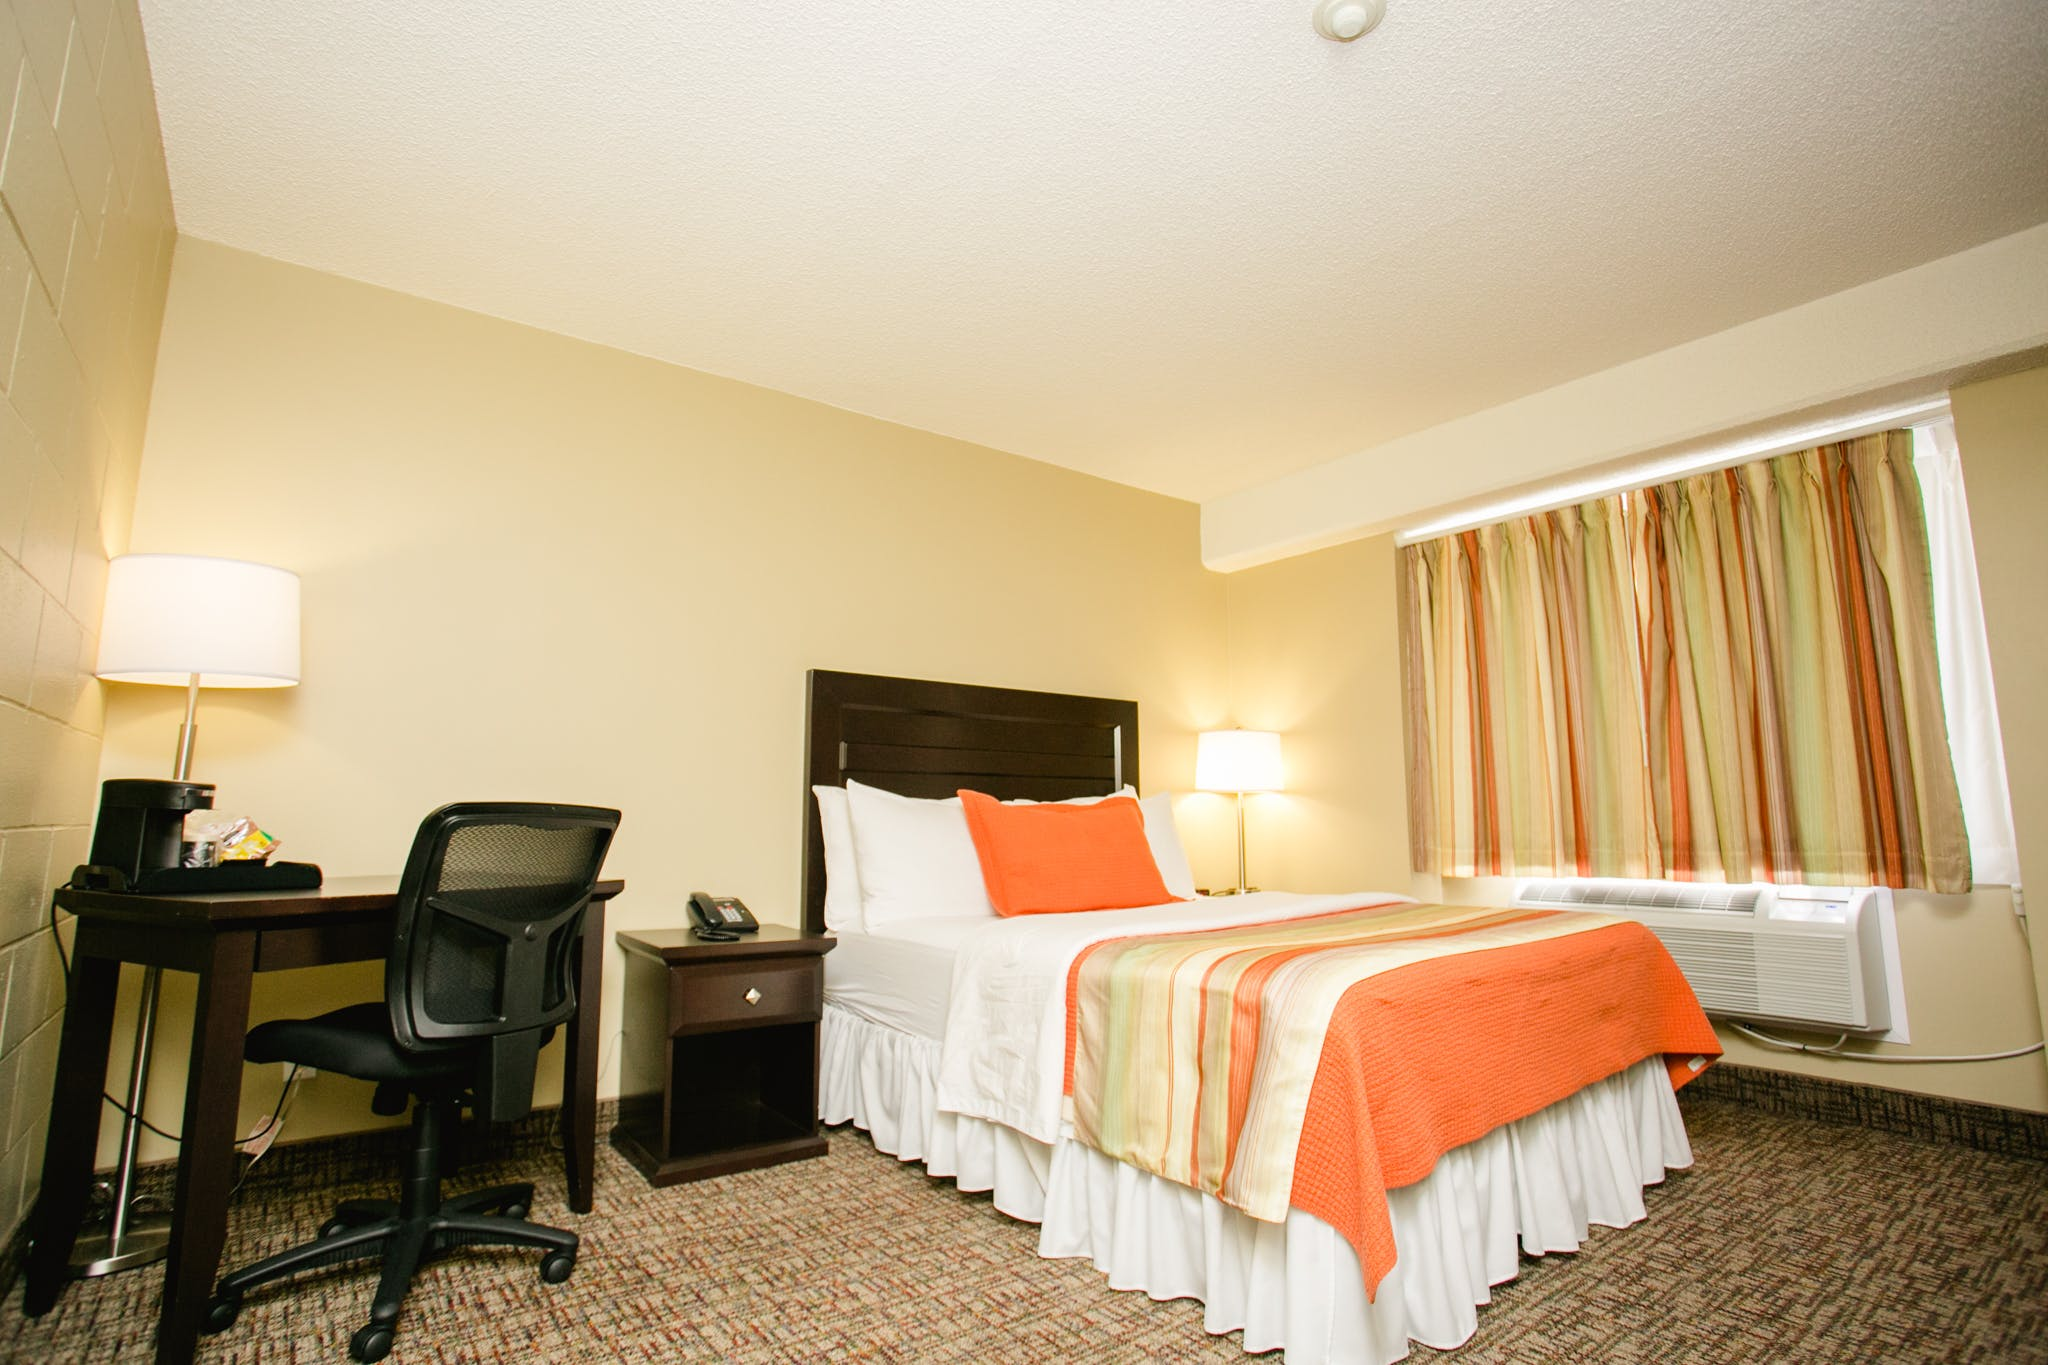 single occupancy room 325 Scott St, Fort Frances, ON P9A 1H1, Canada Phone: +1 807-274-5500